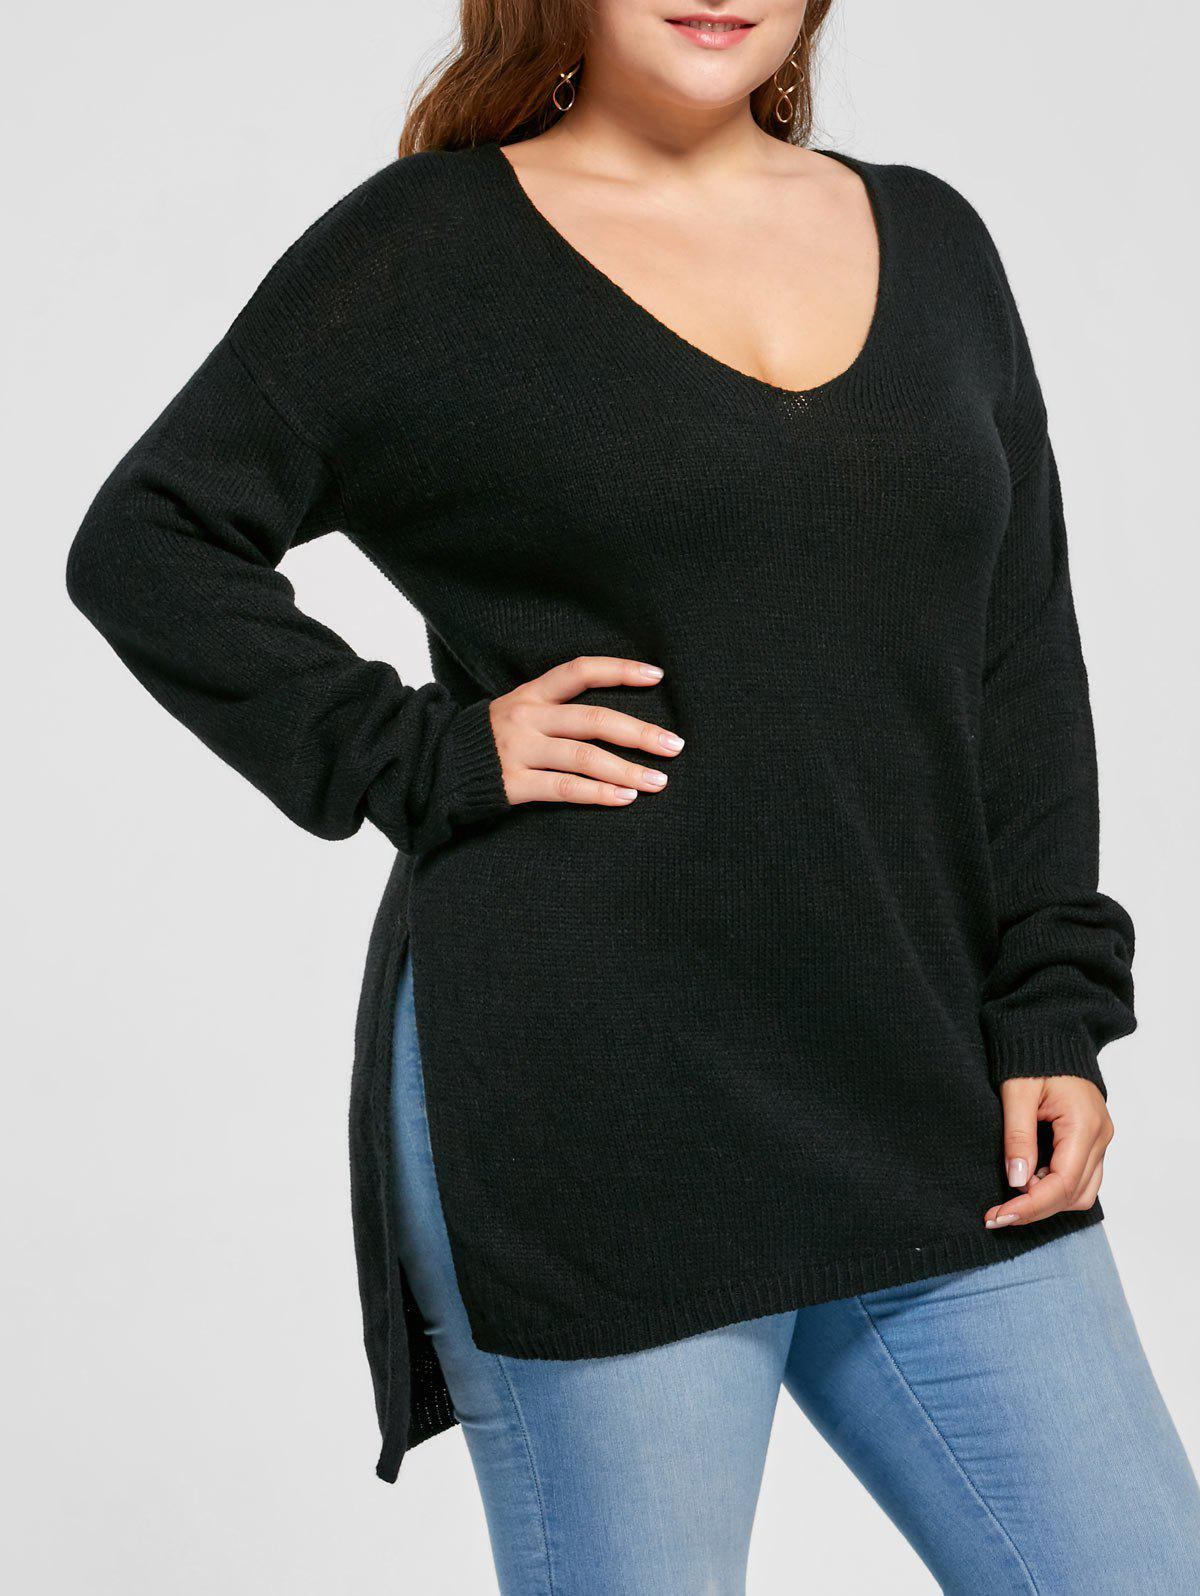 Plus Size Side Slit V Neck Asymmetric SweaterWOMEN<br><br>Size: 5XL; Color: BLACK; Type: Pullovers; Material: Acrylic; Sleeve Length: Full; Collar: V-Neck; Style: Casual; Season: Fall,Spring; Pattern Type: Solid; Weight: 0.4000kg; Package Contents: 1 x Sweater;